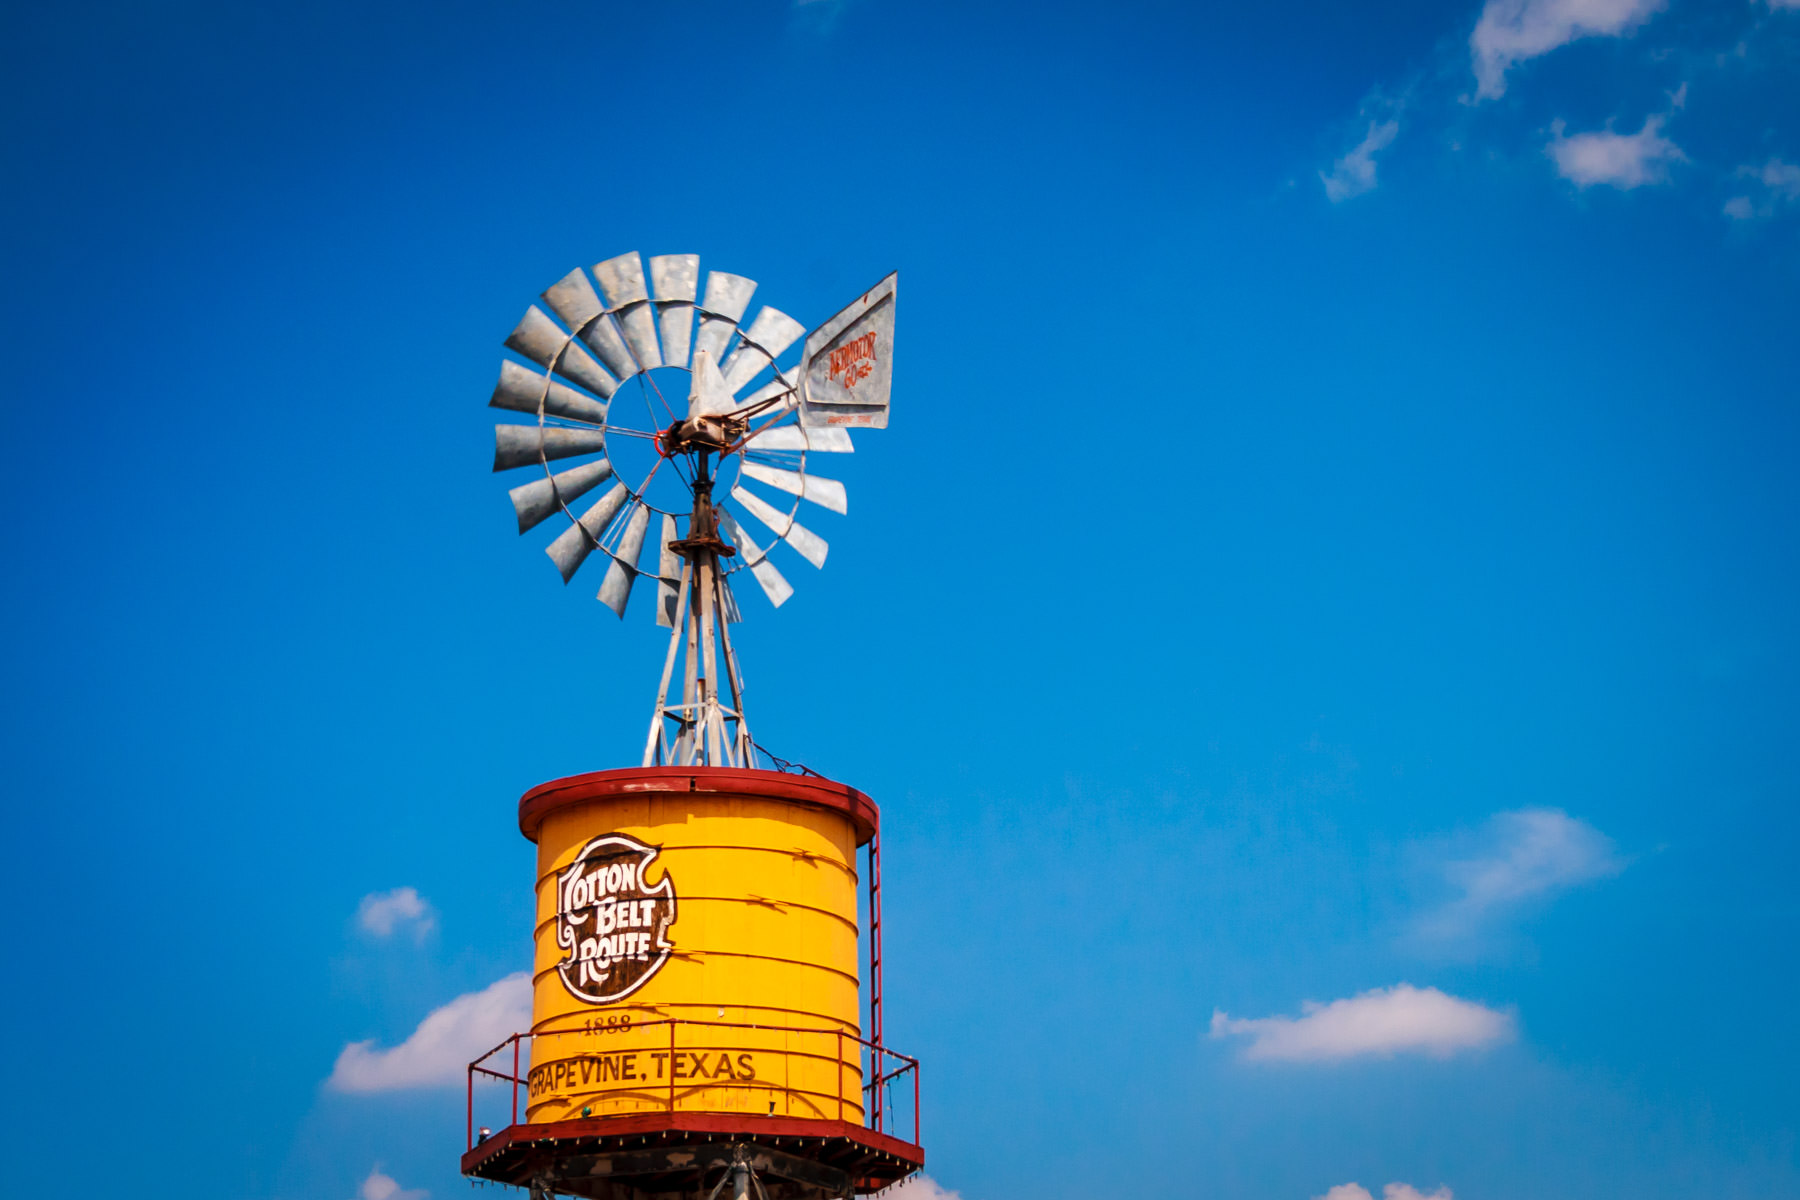 A vintage Cotton Belt Route Aeromotor-brand windmill atop a water tower in Grapevine, Texas.